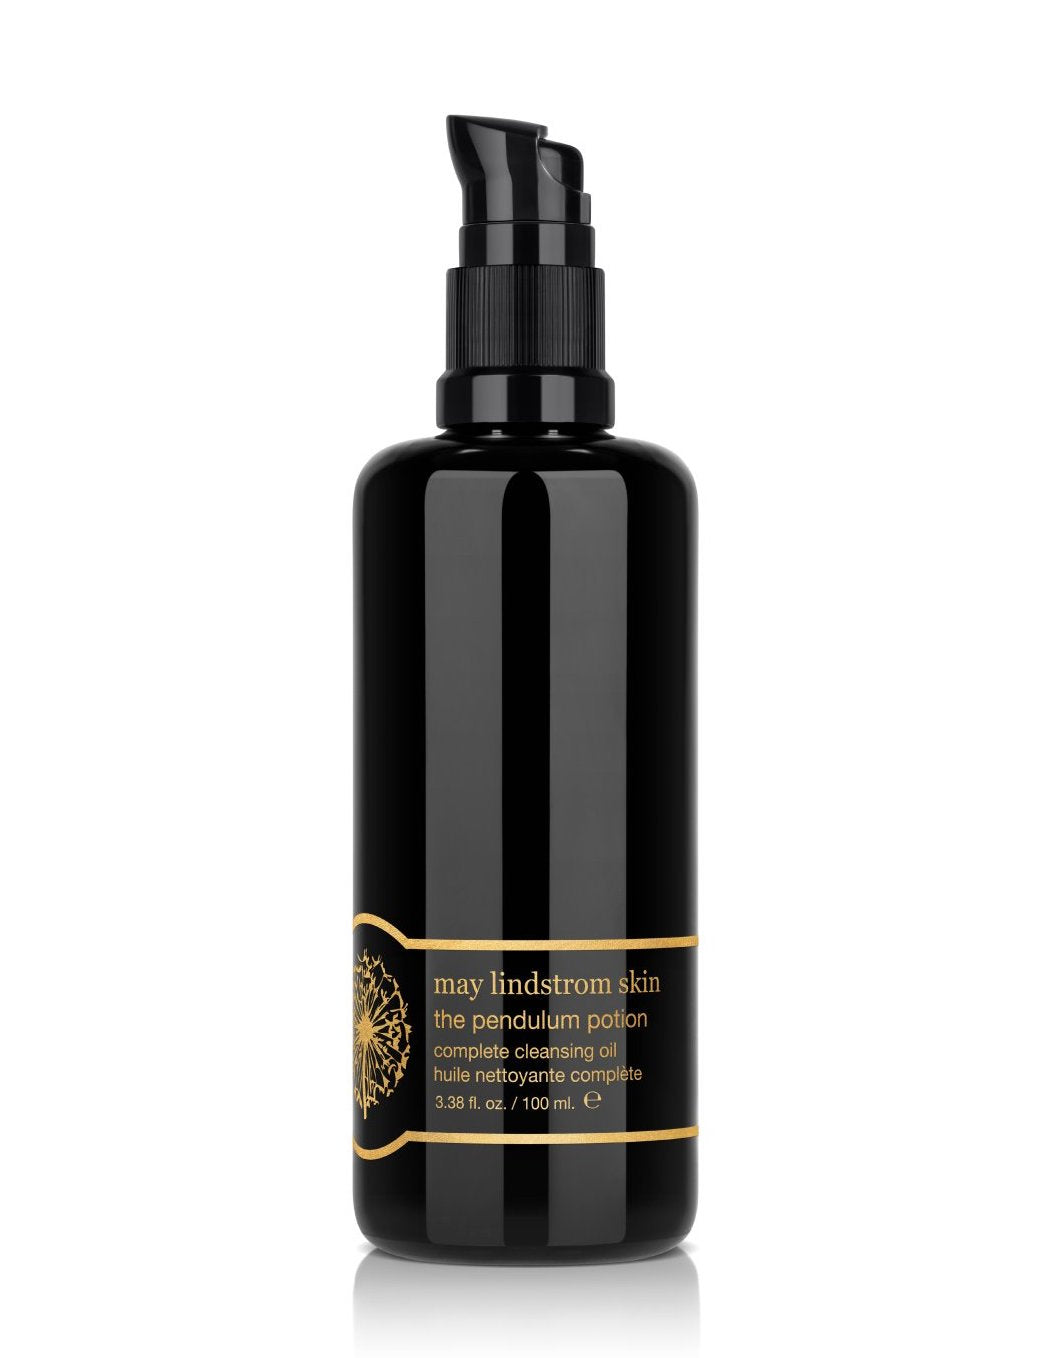 the pendulum potion complete cleansing oil